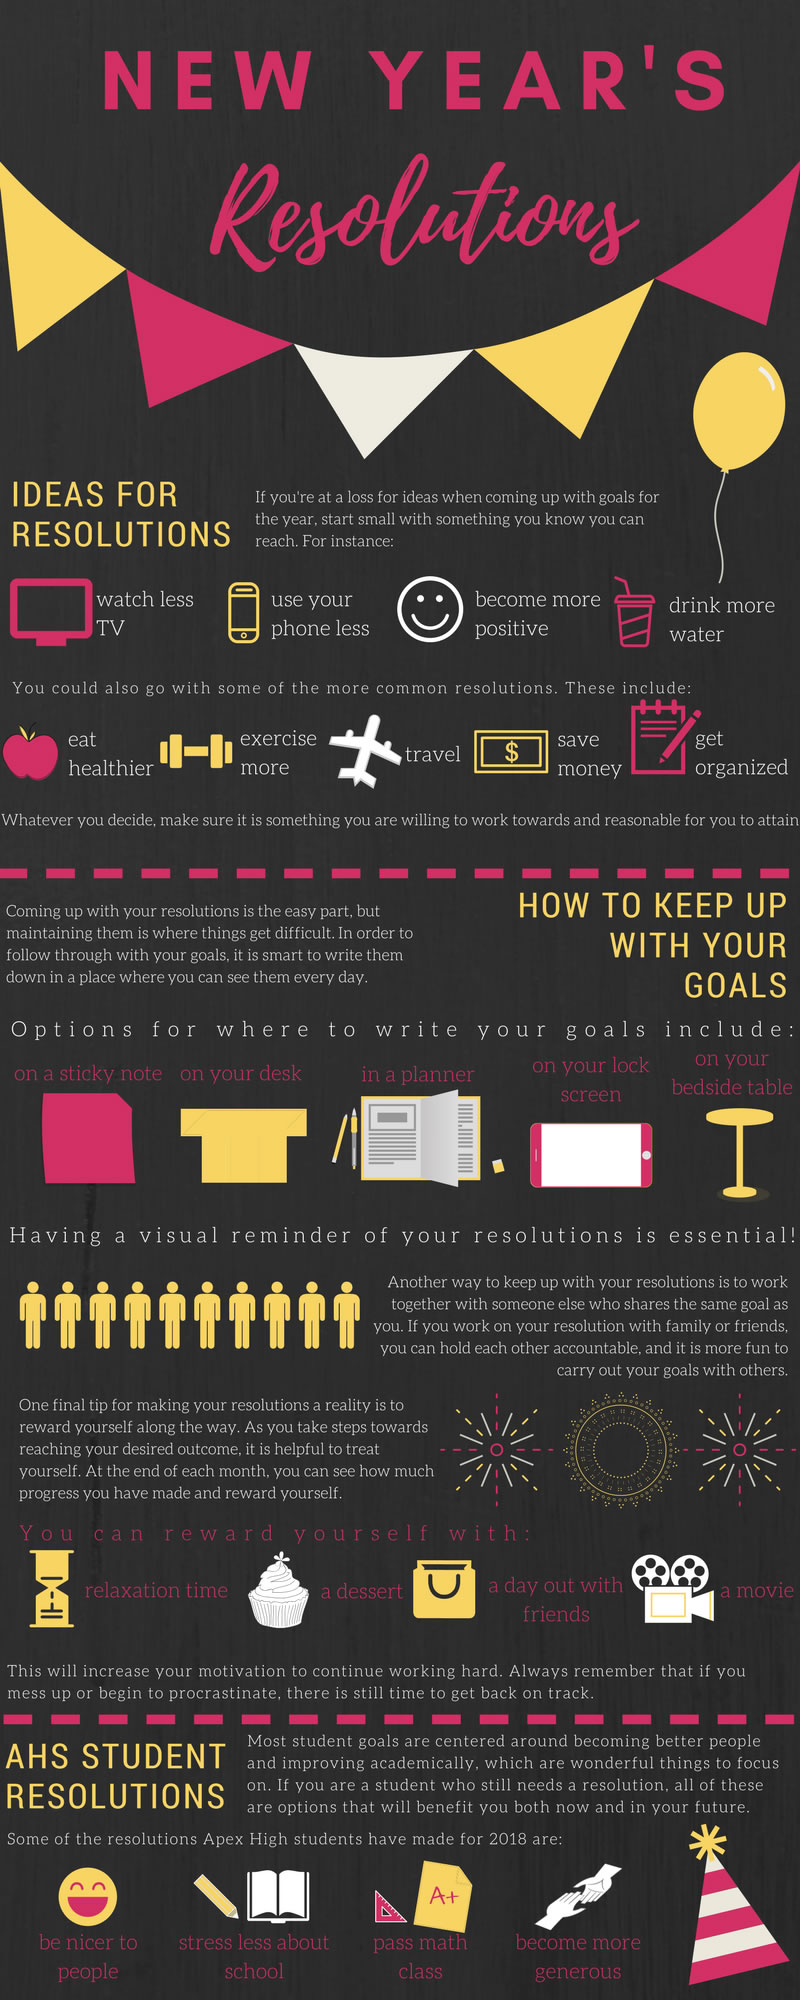 New Year s Resolutions   Peak Student Media Do you need ideas for your resolution or advice on how to achieve your  goals throughout the year  This infographic is a simple guide for starting  off 2018